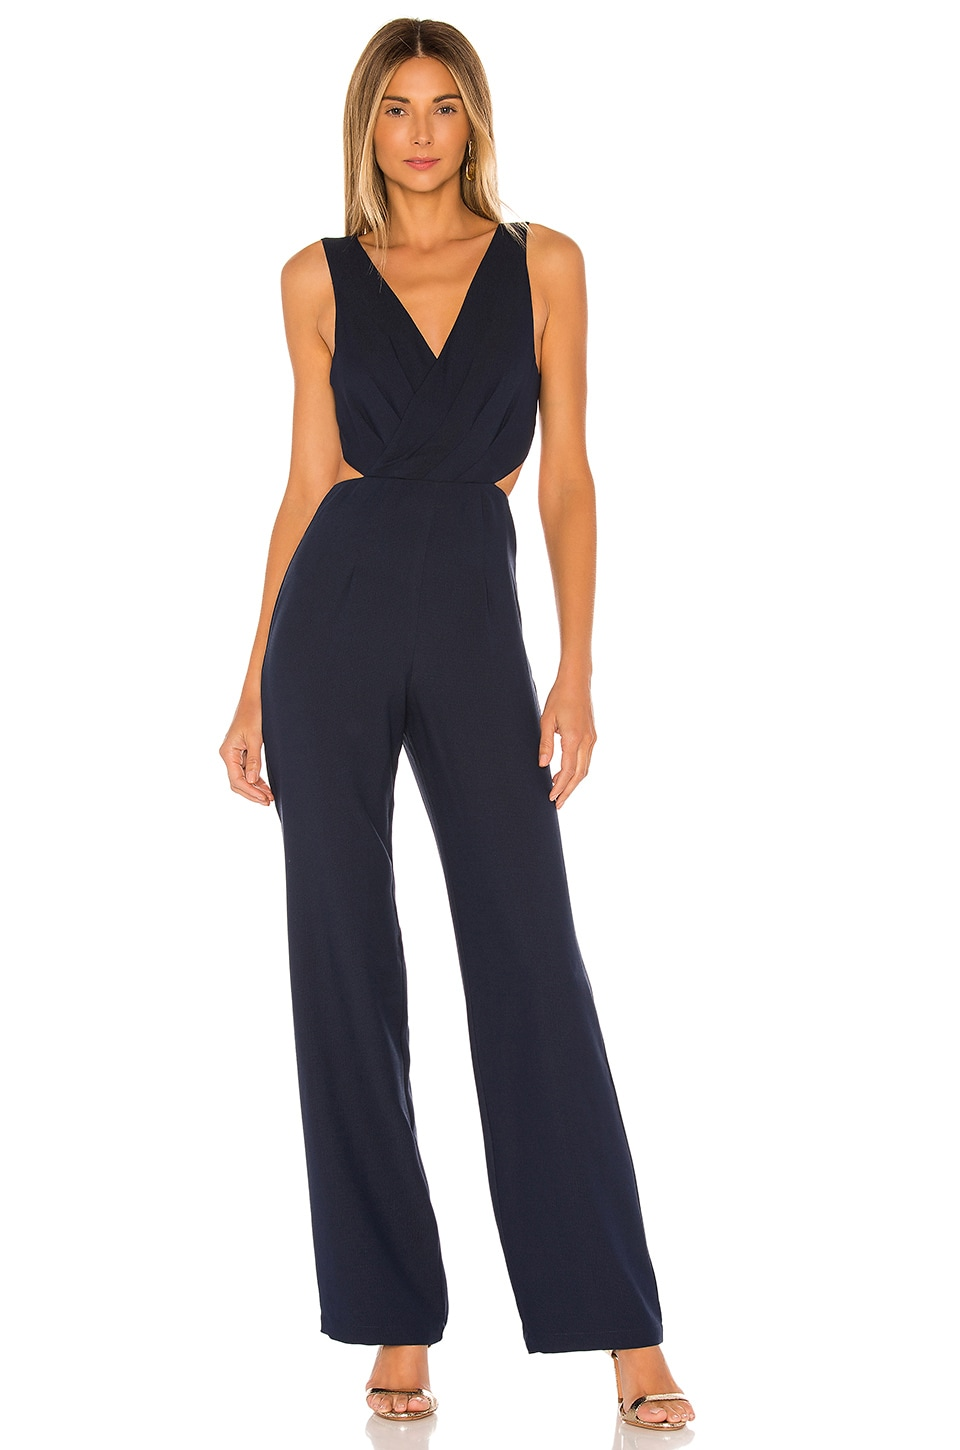 House of Harlow 1960 x REVOLVE Urma Jumpsuit in Navy